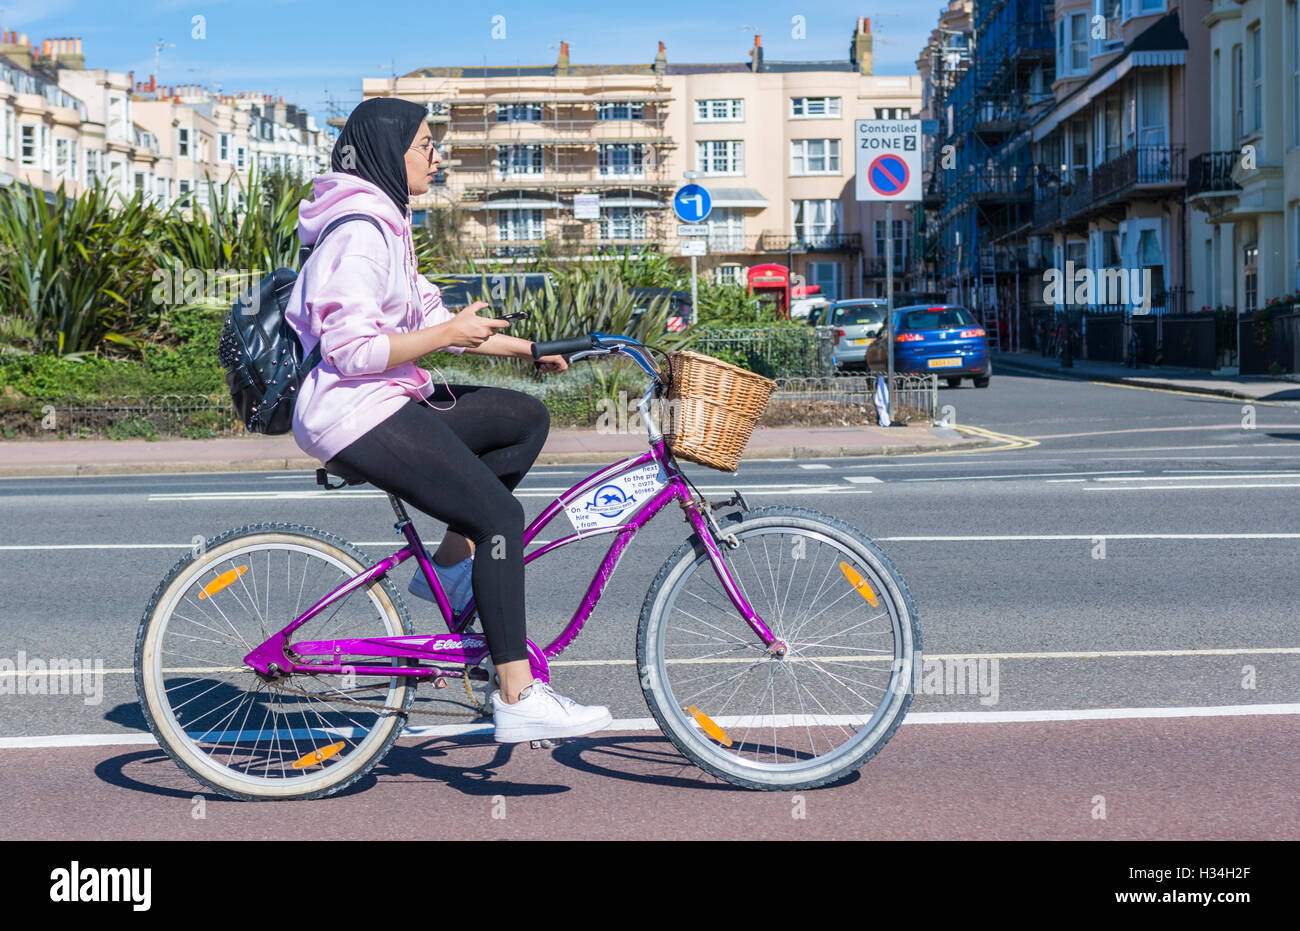 Cyclist riding on a rented bicycle from Brighton Beach Bikes in Brighton, East Sussex, England, UK. - Stock Image